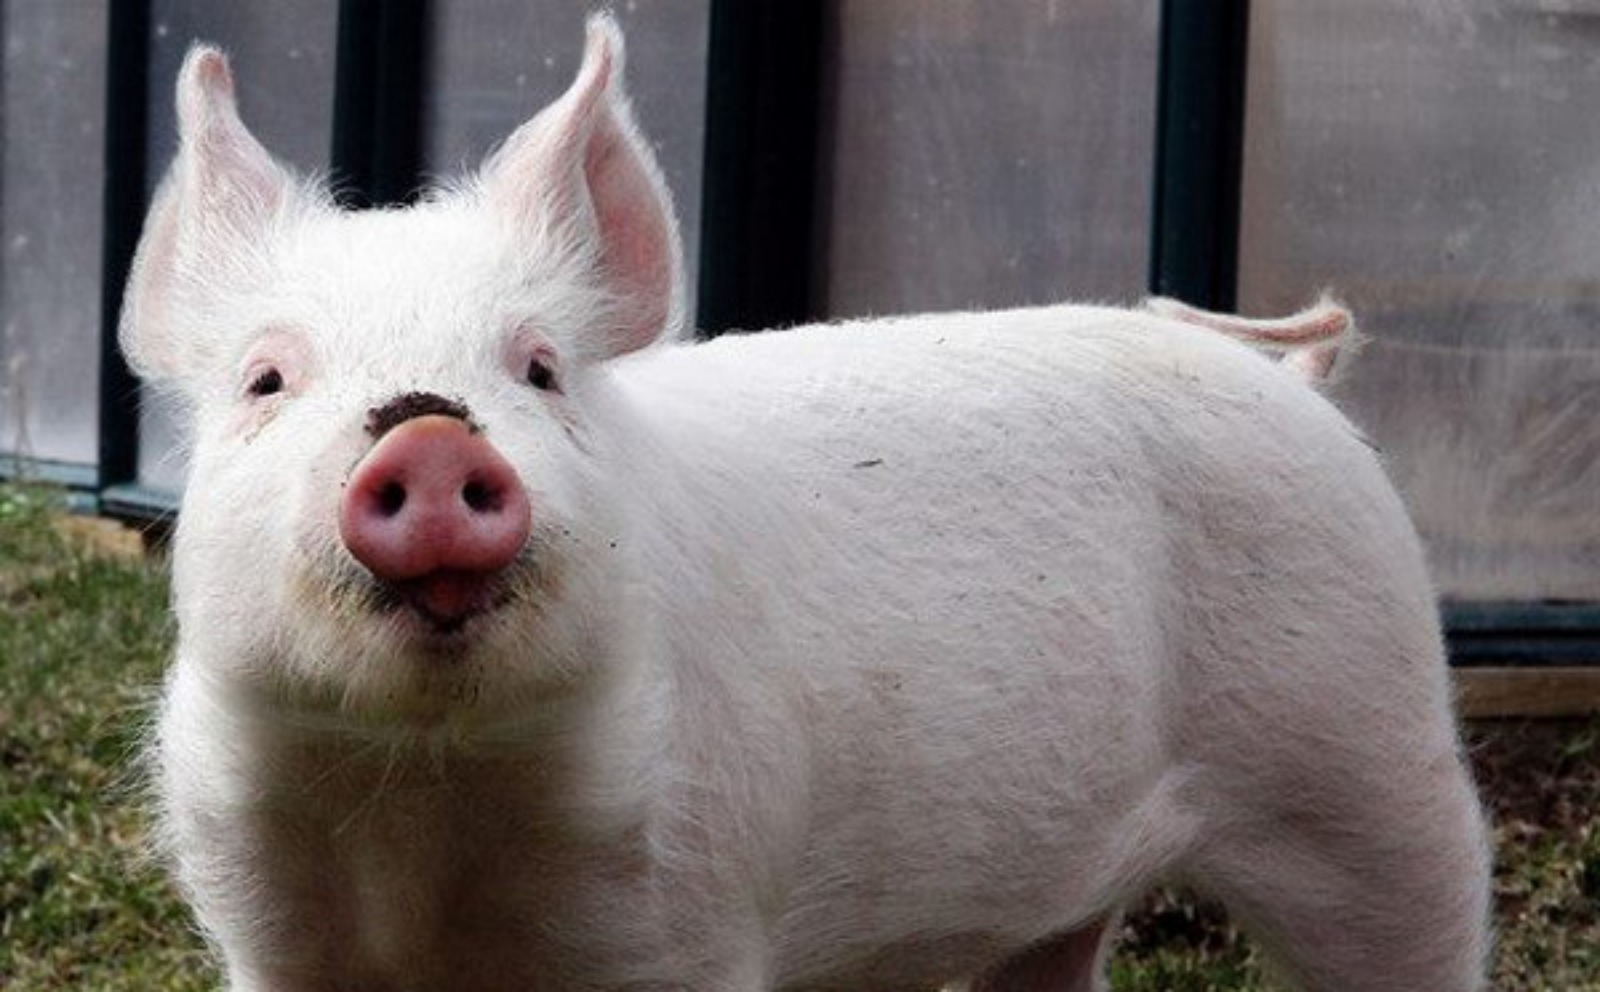 Our Top 5 All-Time Favorite Rescued Farm Animals Stories